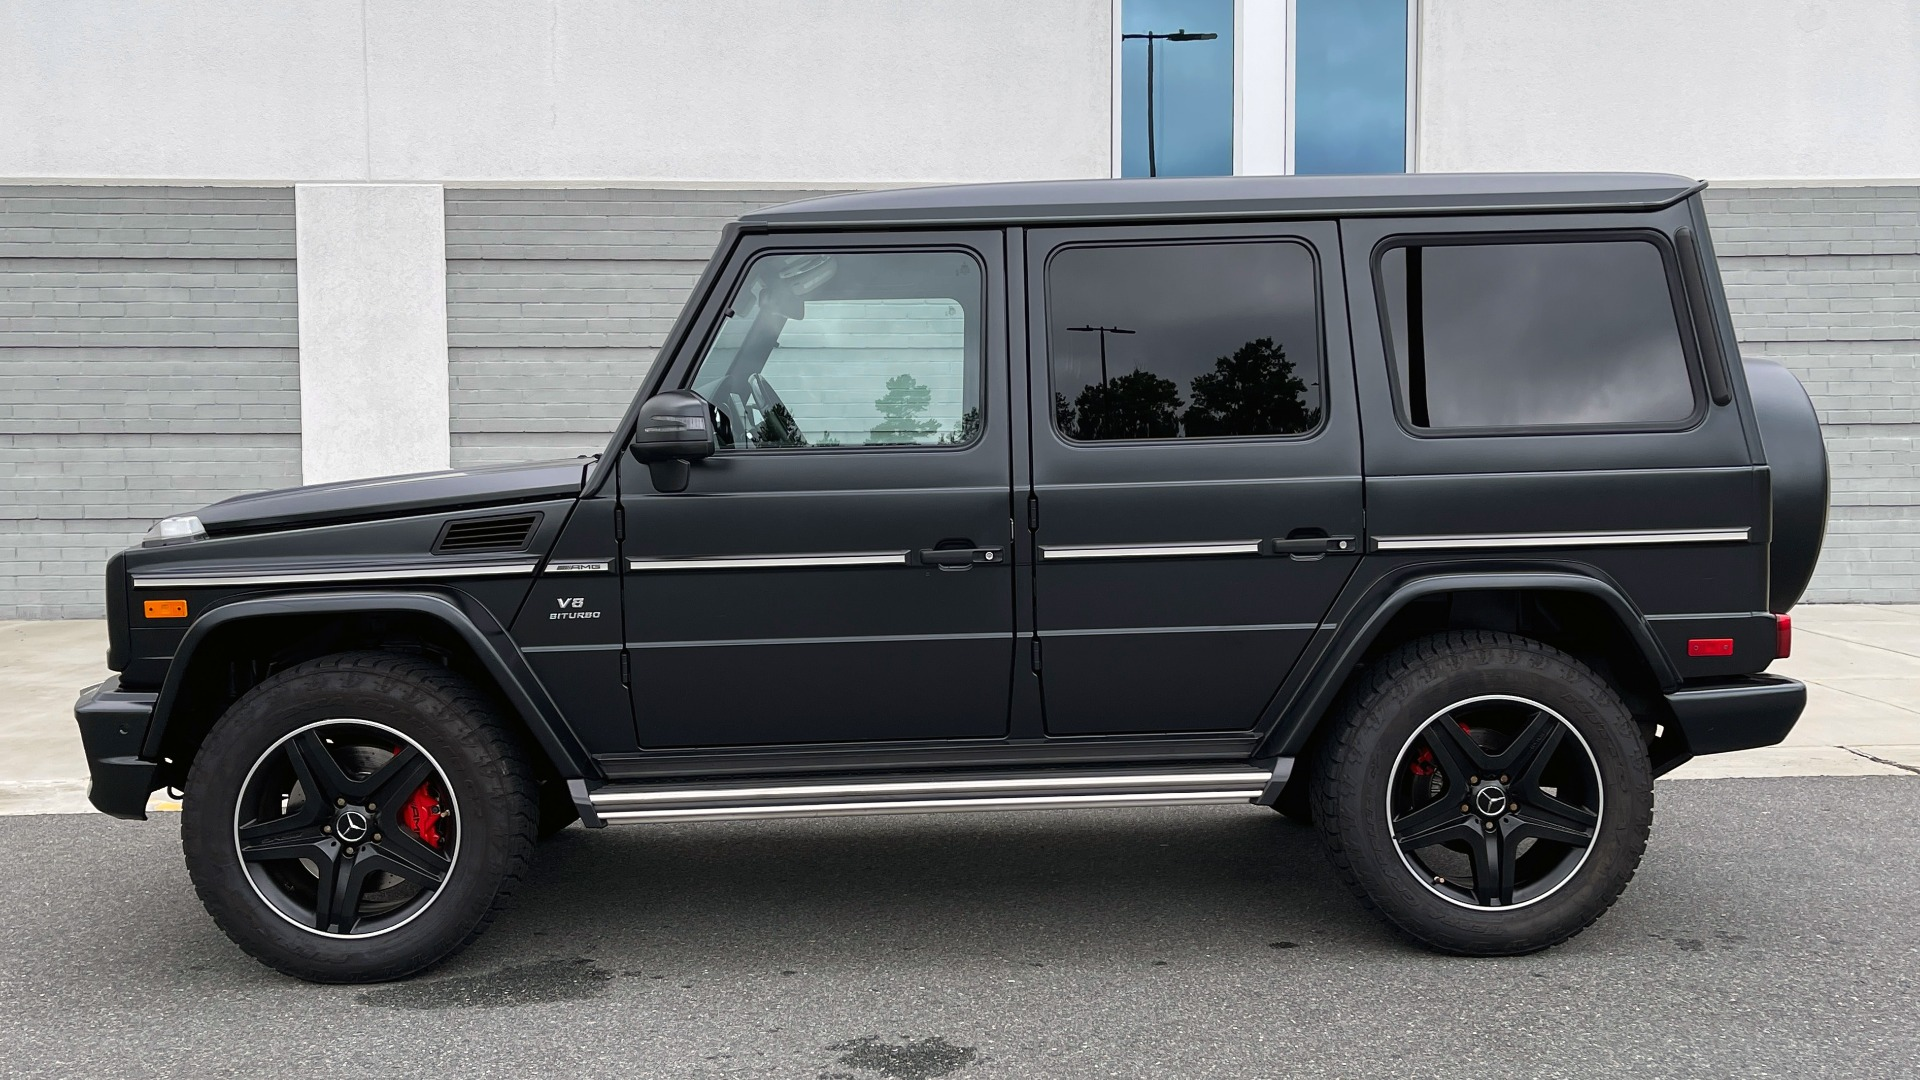 Used 2017 Mercedes-Benz G-CLASS AMG G 63 / DESIGNO PKG / NAV / SUNROOF / H/K SND / REARVIEW for sale $124,999 at Formula Imports in Charlotte NC 28227 3